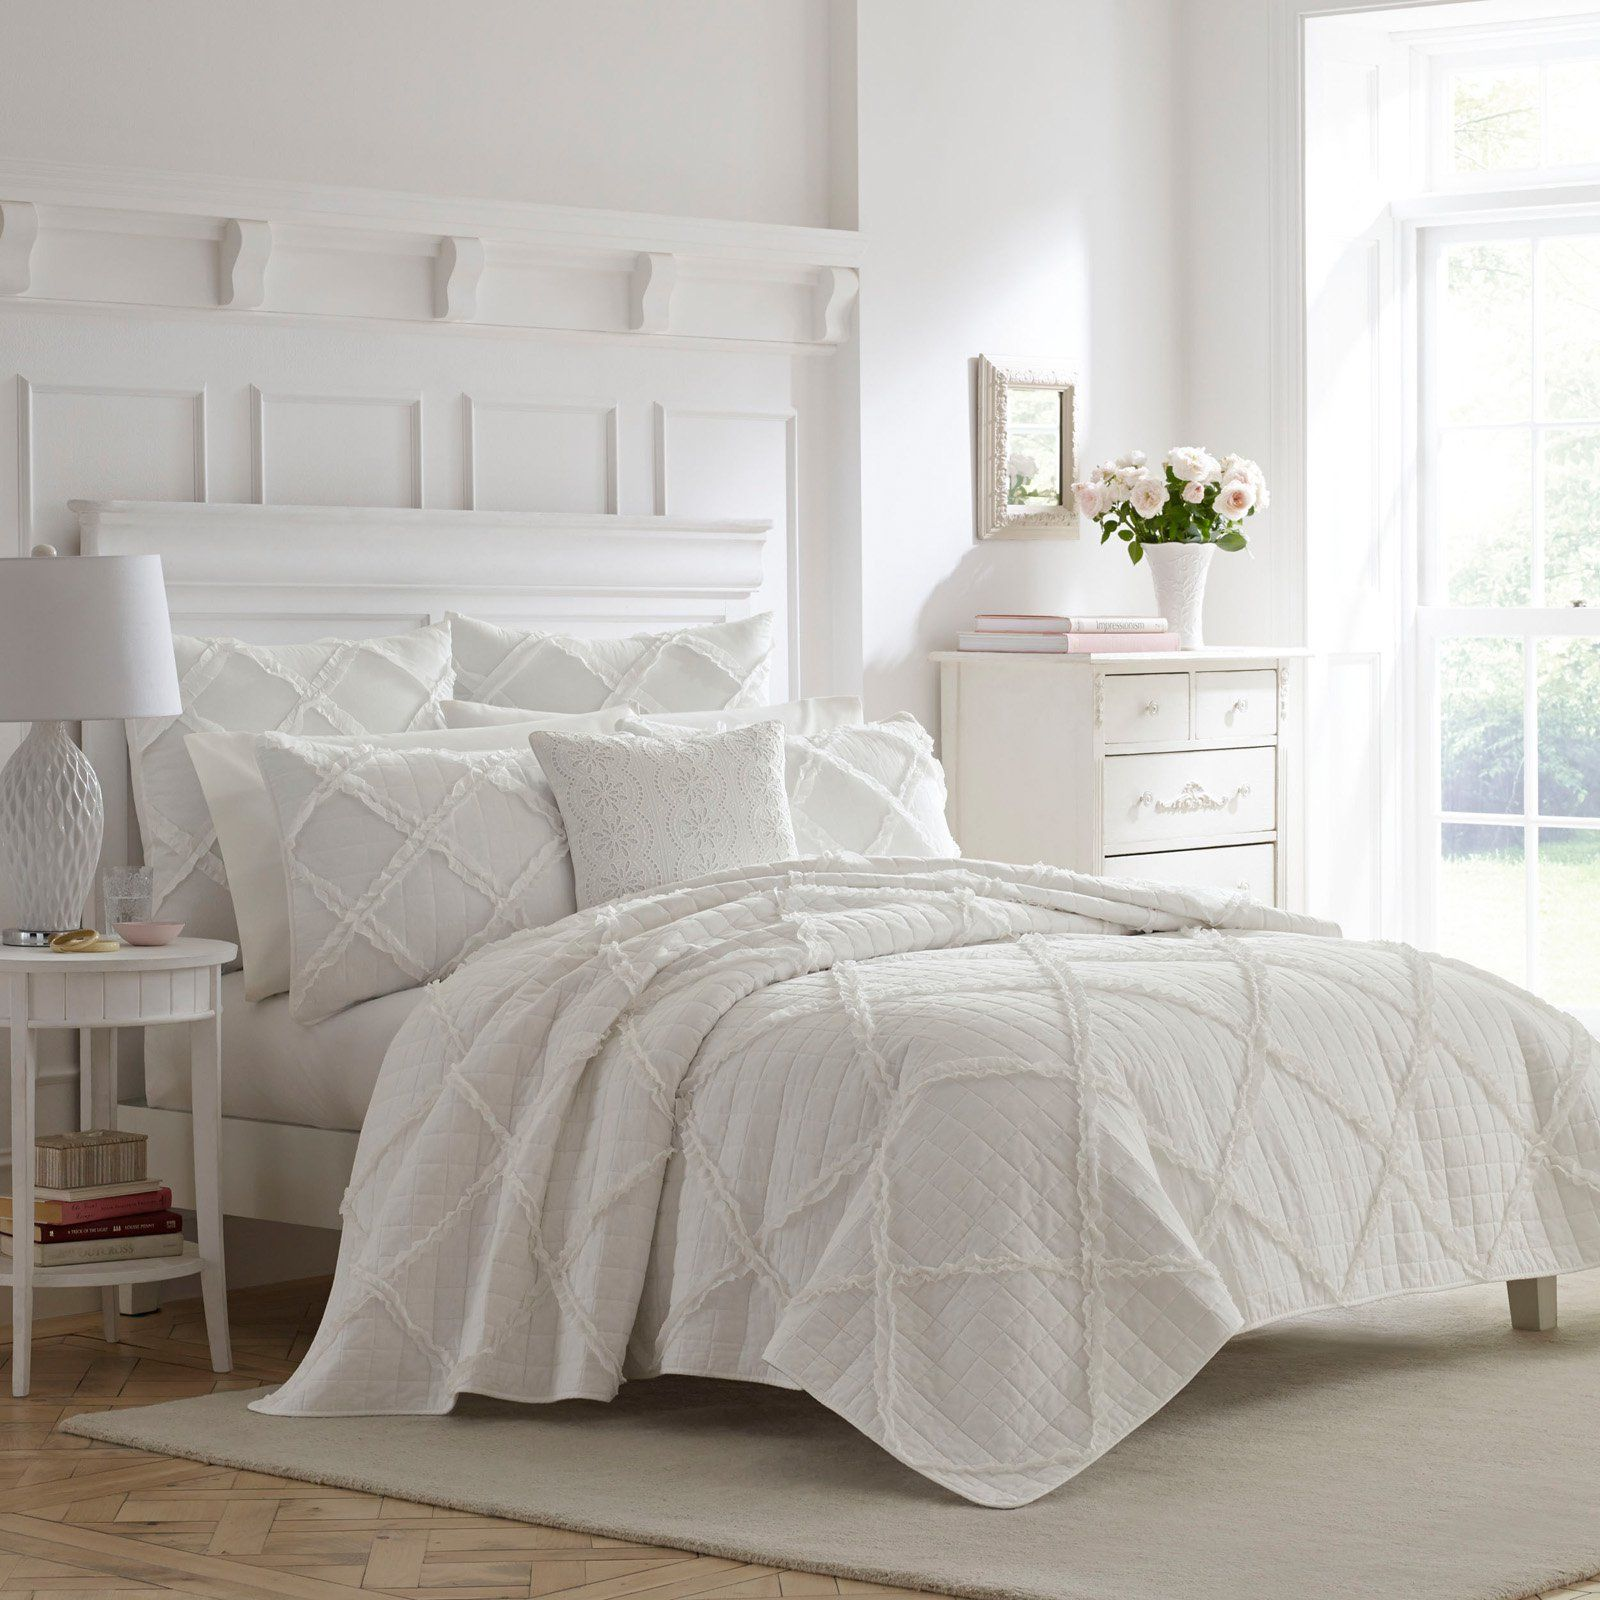 Maisy White Ruffled Quilt Set By Laura Ashley Size King In 2020